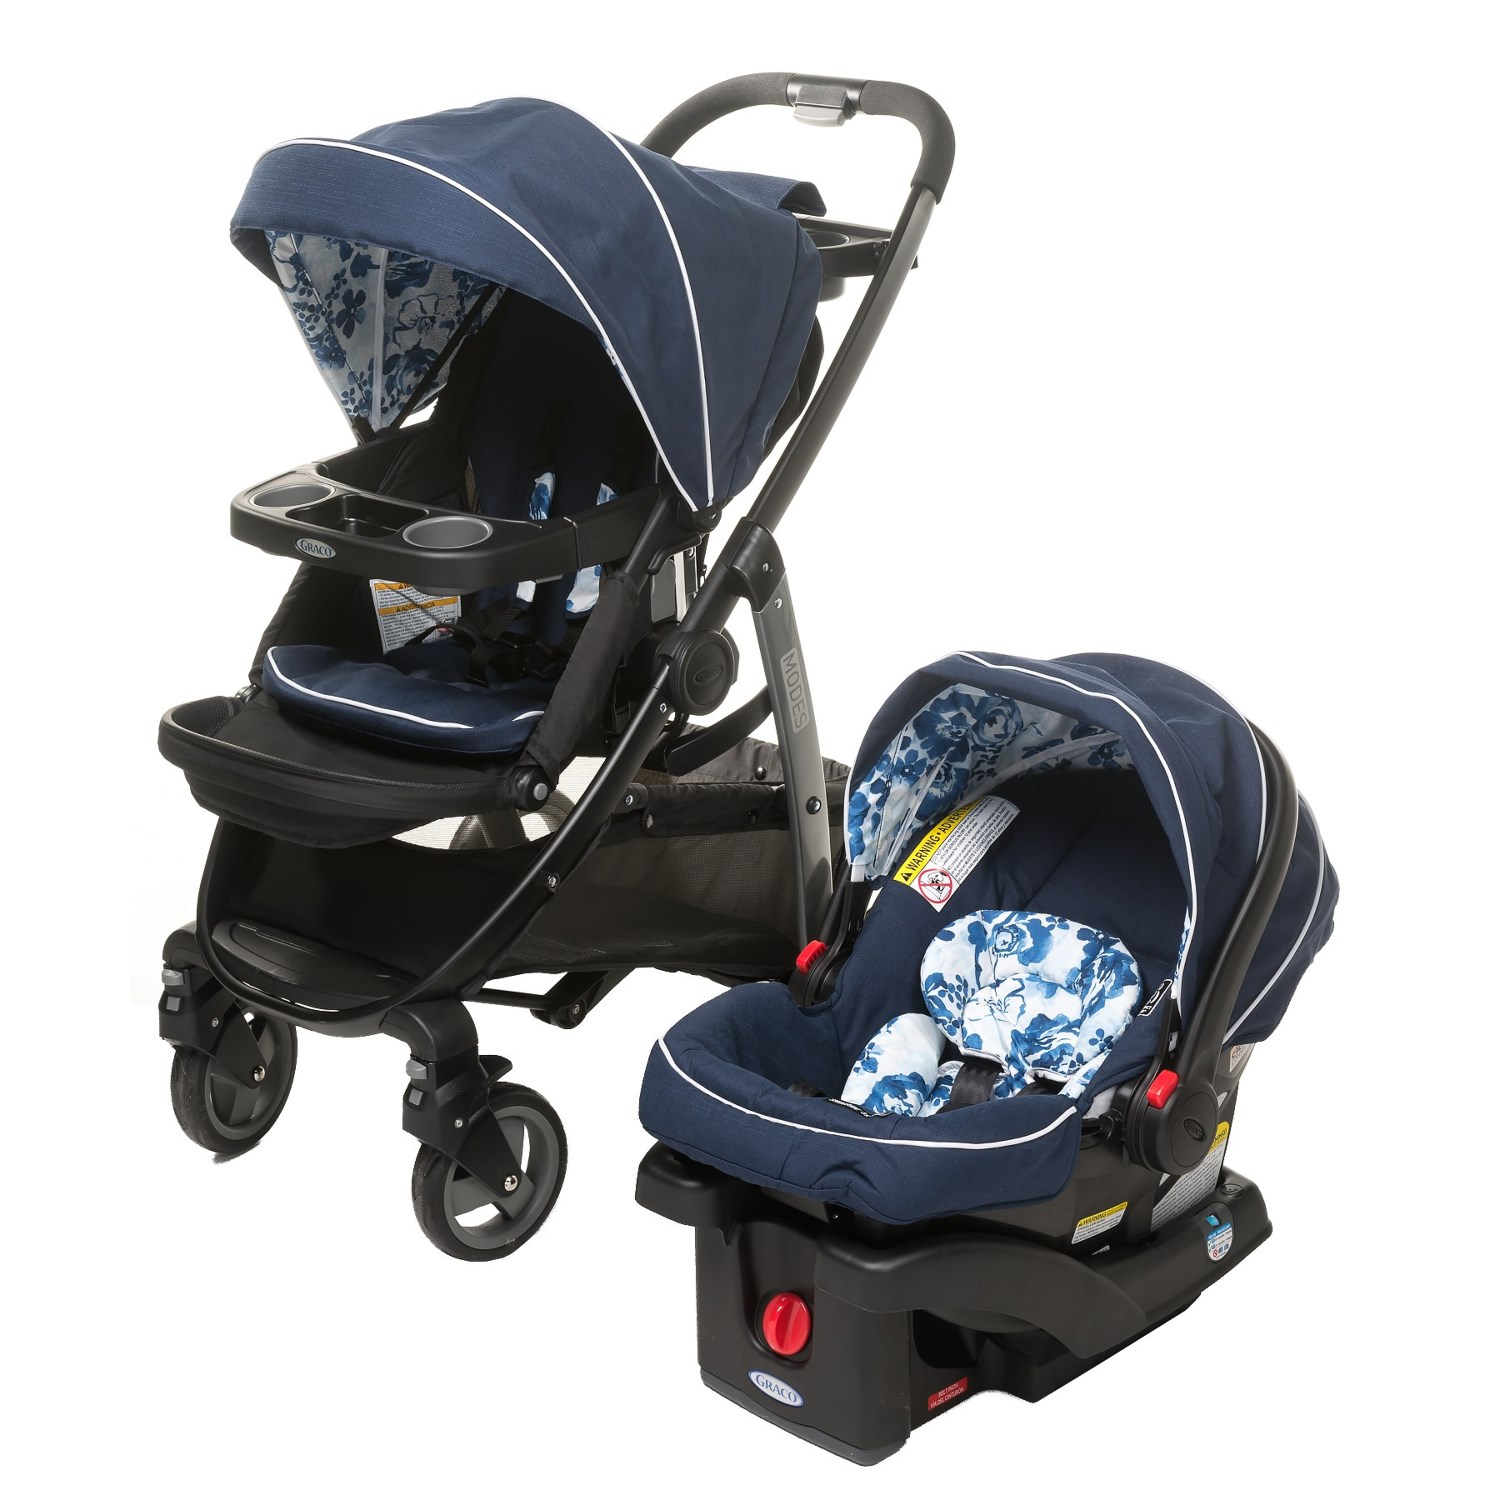 Graco Modes 3-in-1 Travel System with SnugRide35 Car Seat - Save 35%